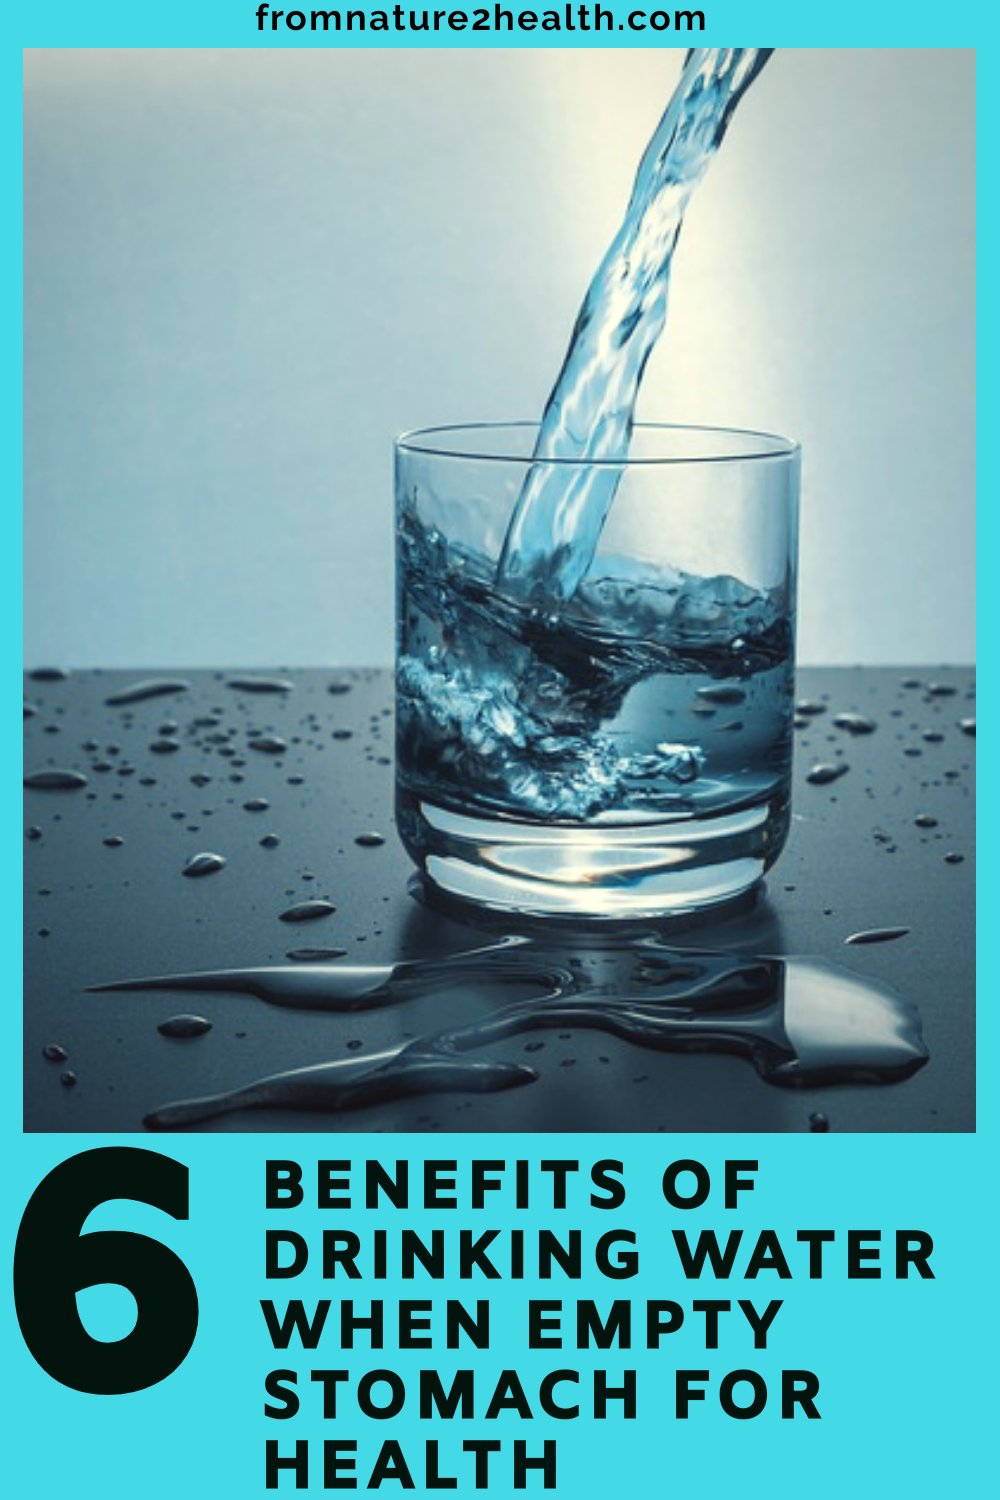 6 Benefits of Drinking Water when Empty Stomach for Health